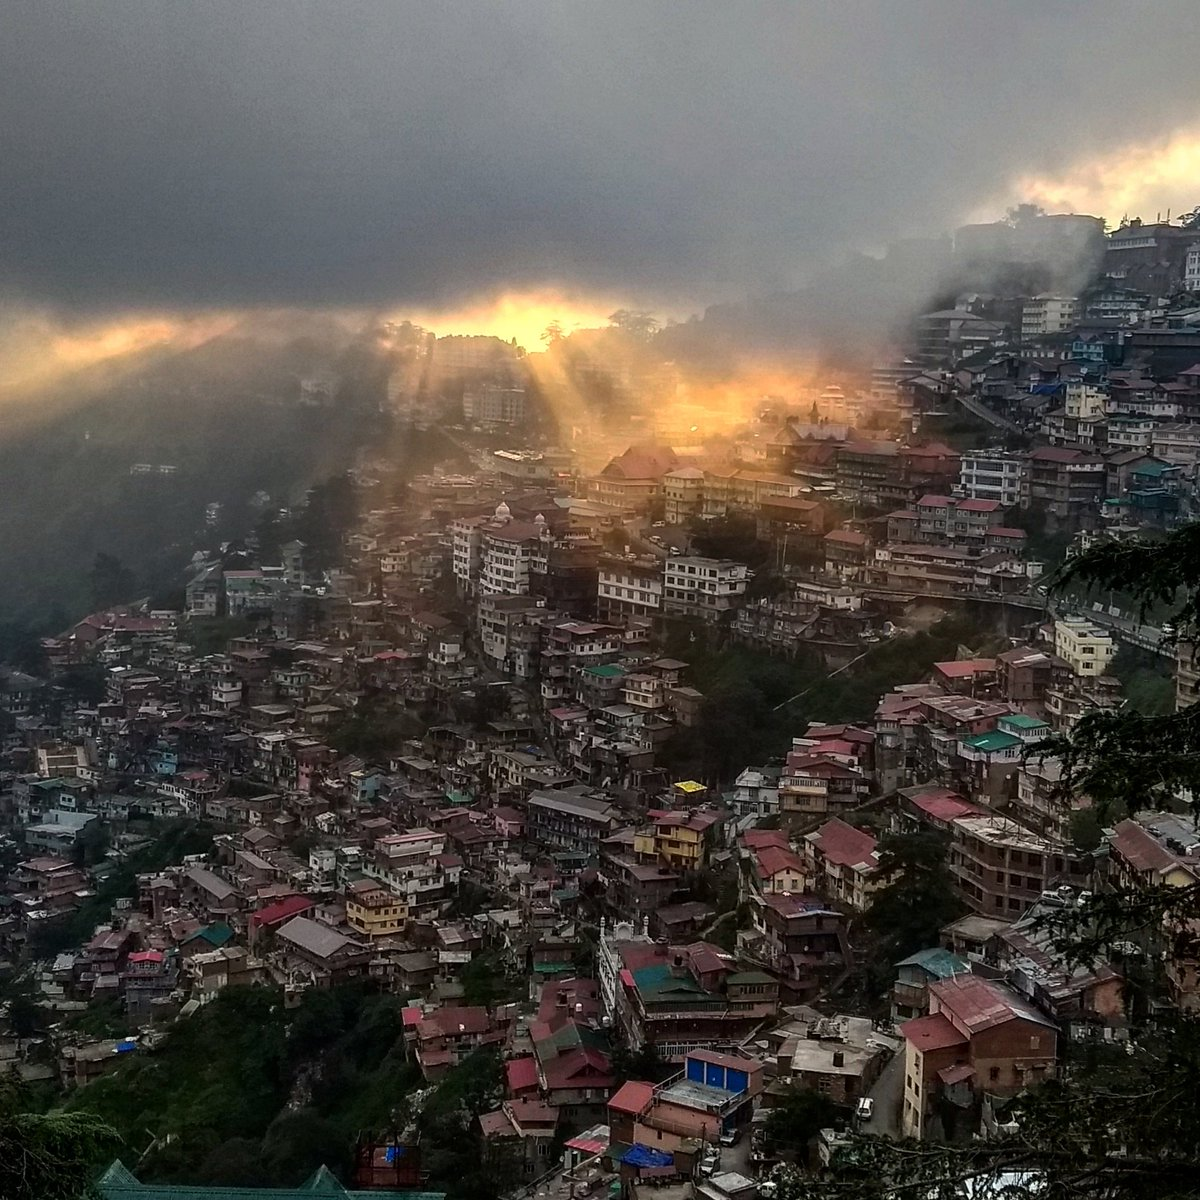 Golden rays from the sky, #Shimla sunset. :) #maproute https://t.co/yAz3jpIMQ2